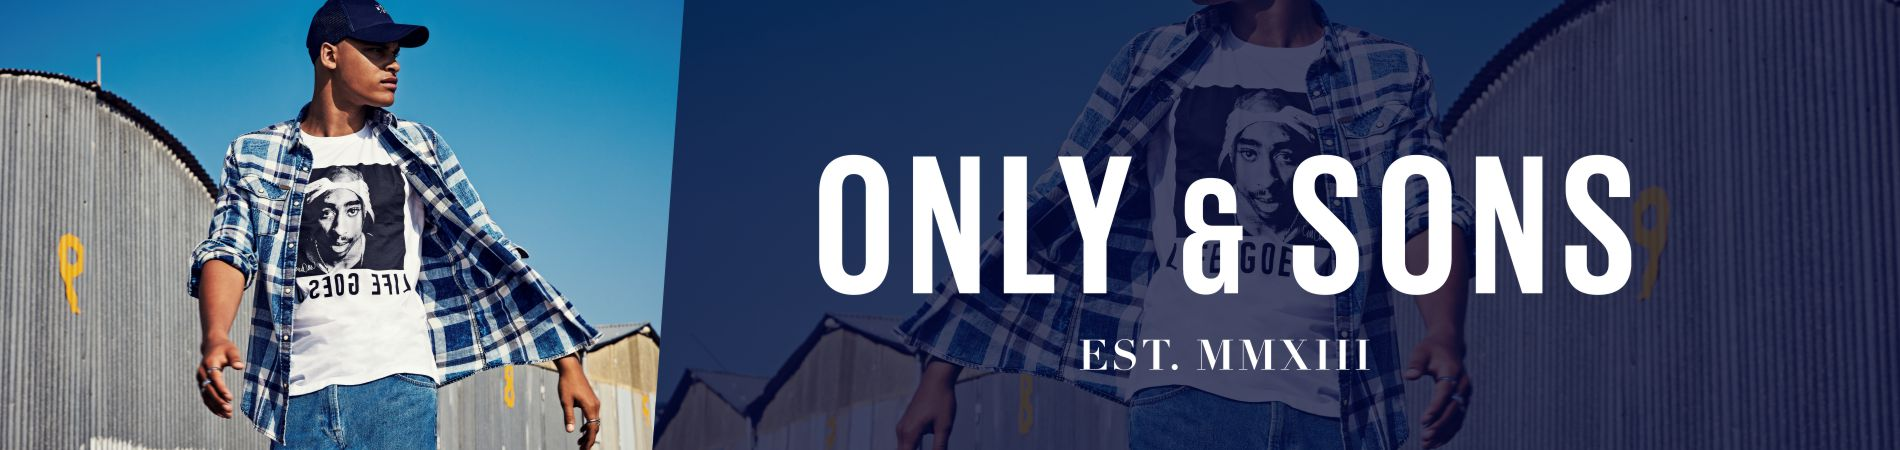 only&sons logo banner